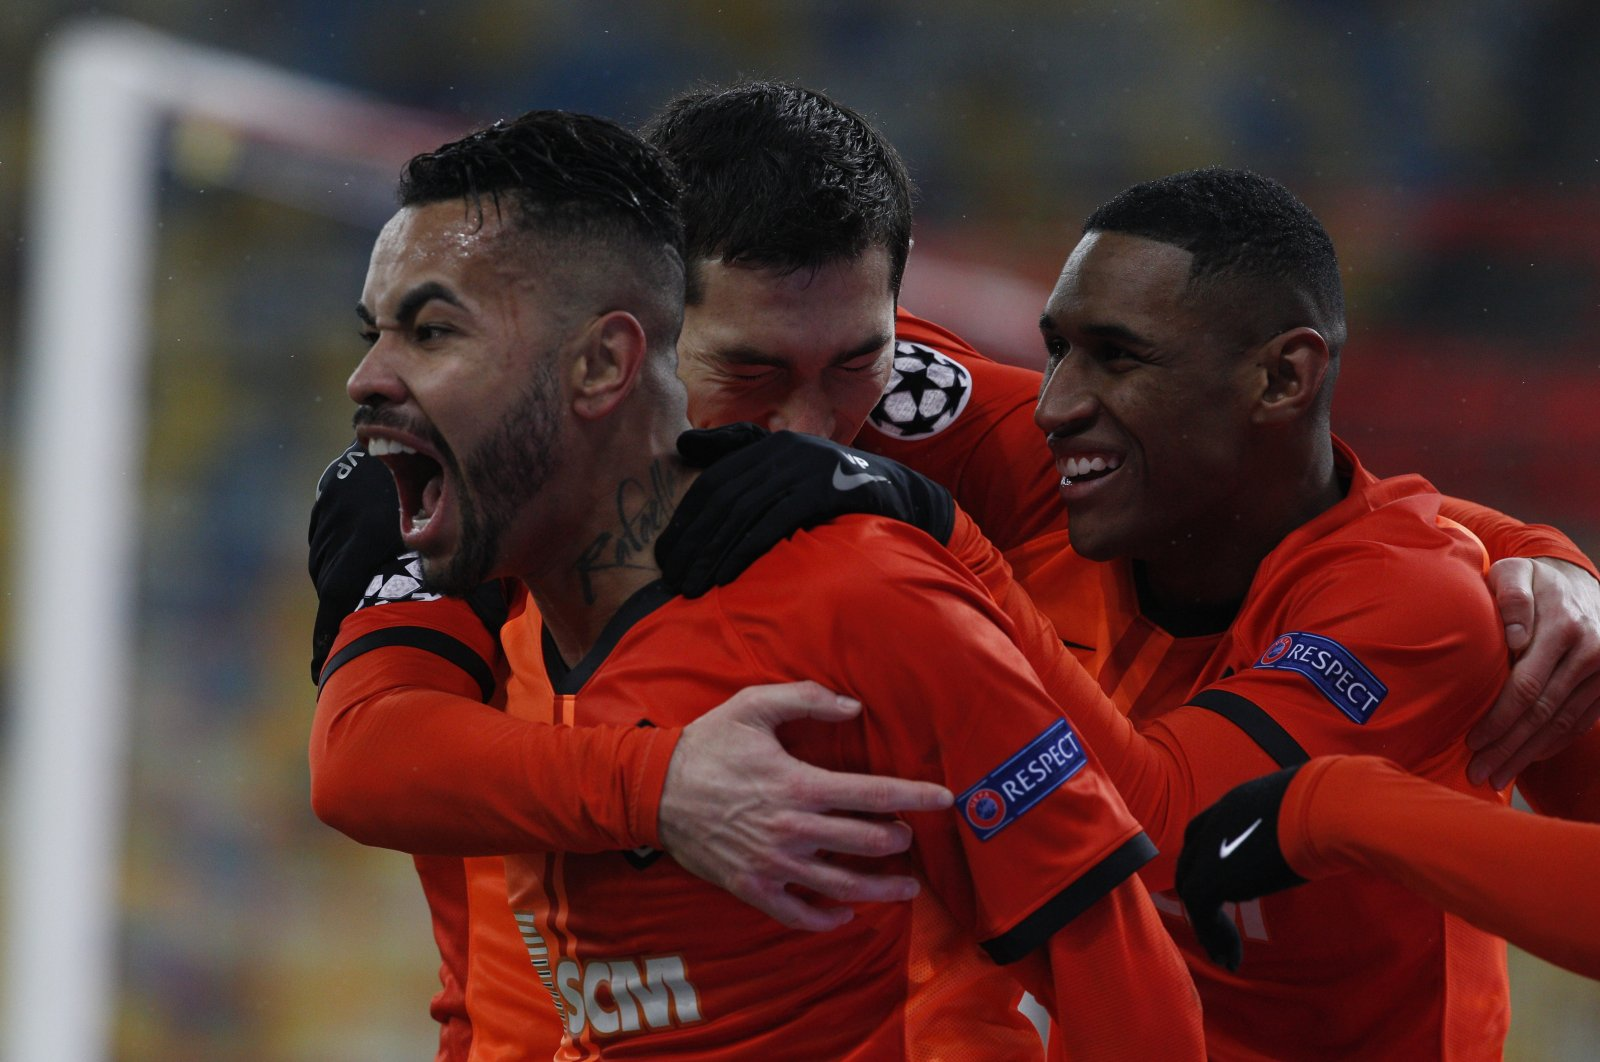 Shakhtar Donetsk's Dentinho shares his joy with teammates after scoring their first goal during the Champions League, Group B, soccer match between Shakhtar Donetsk and Real Madrid at the Olimpiyskiy Stadium in Kyiv, Ukraine, Dec. 1, 2020. (AA Photo)